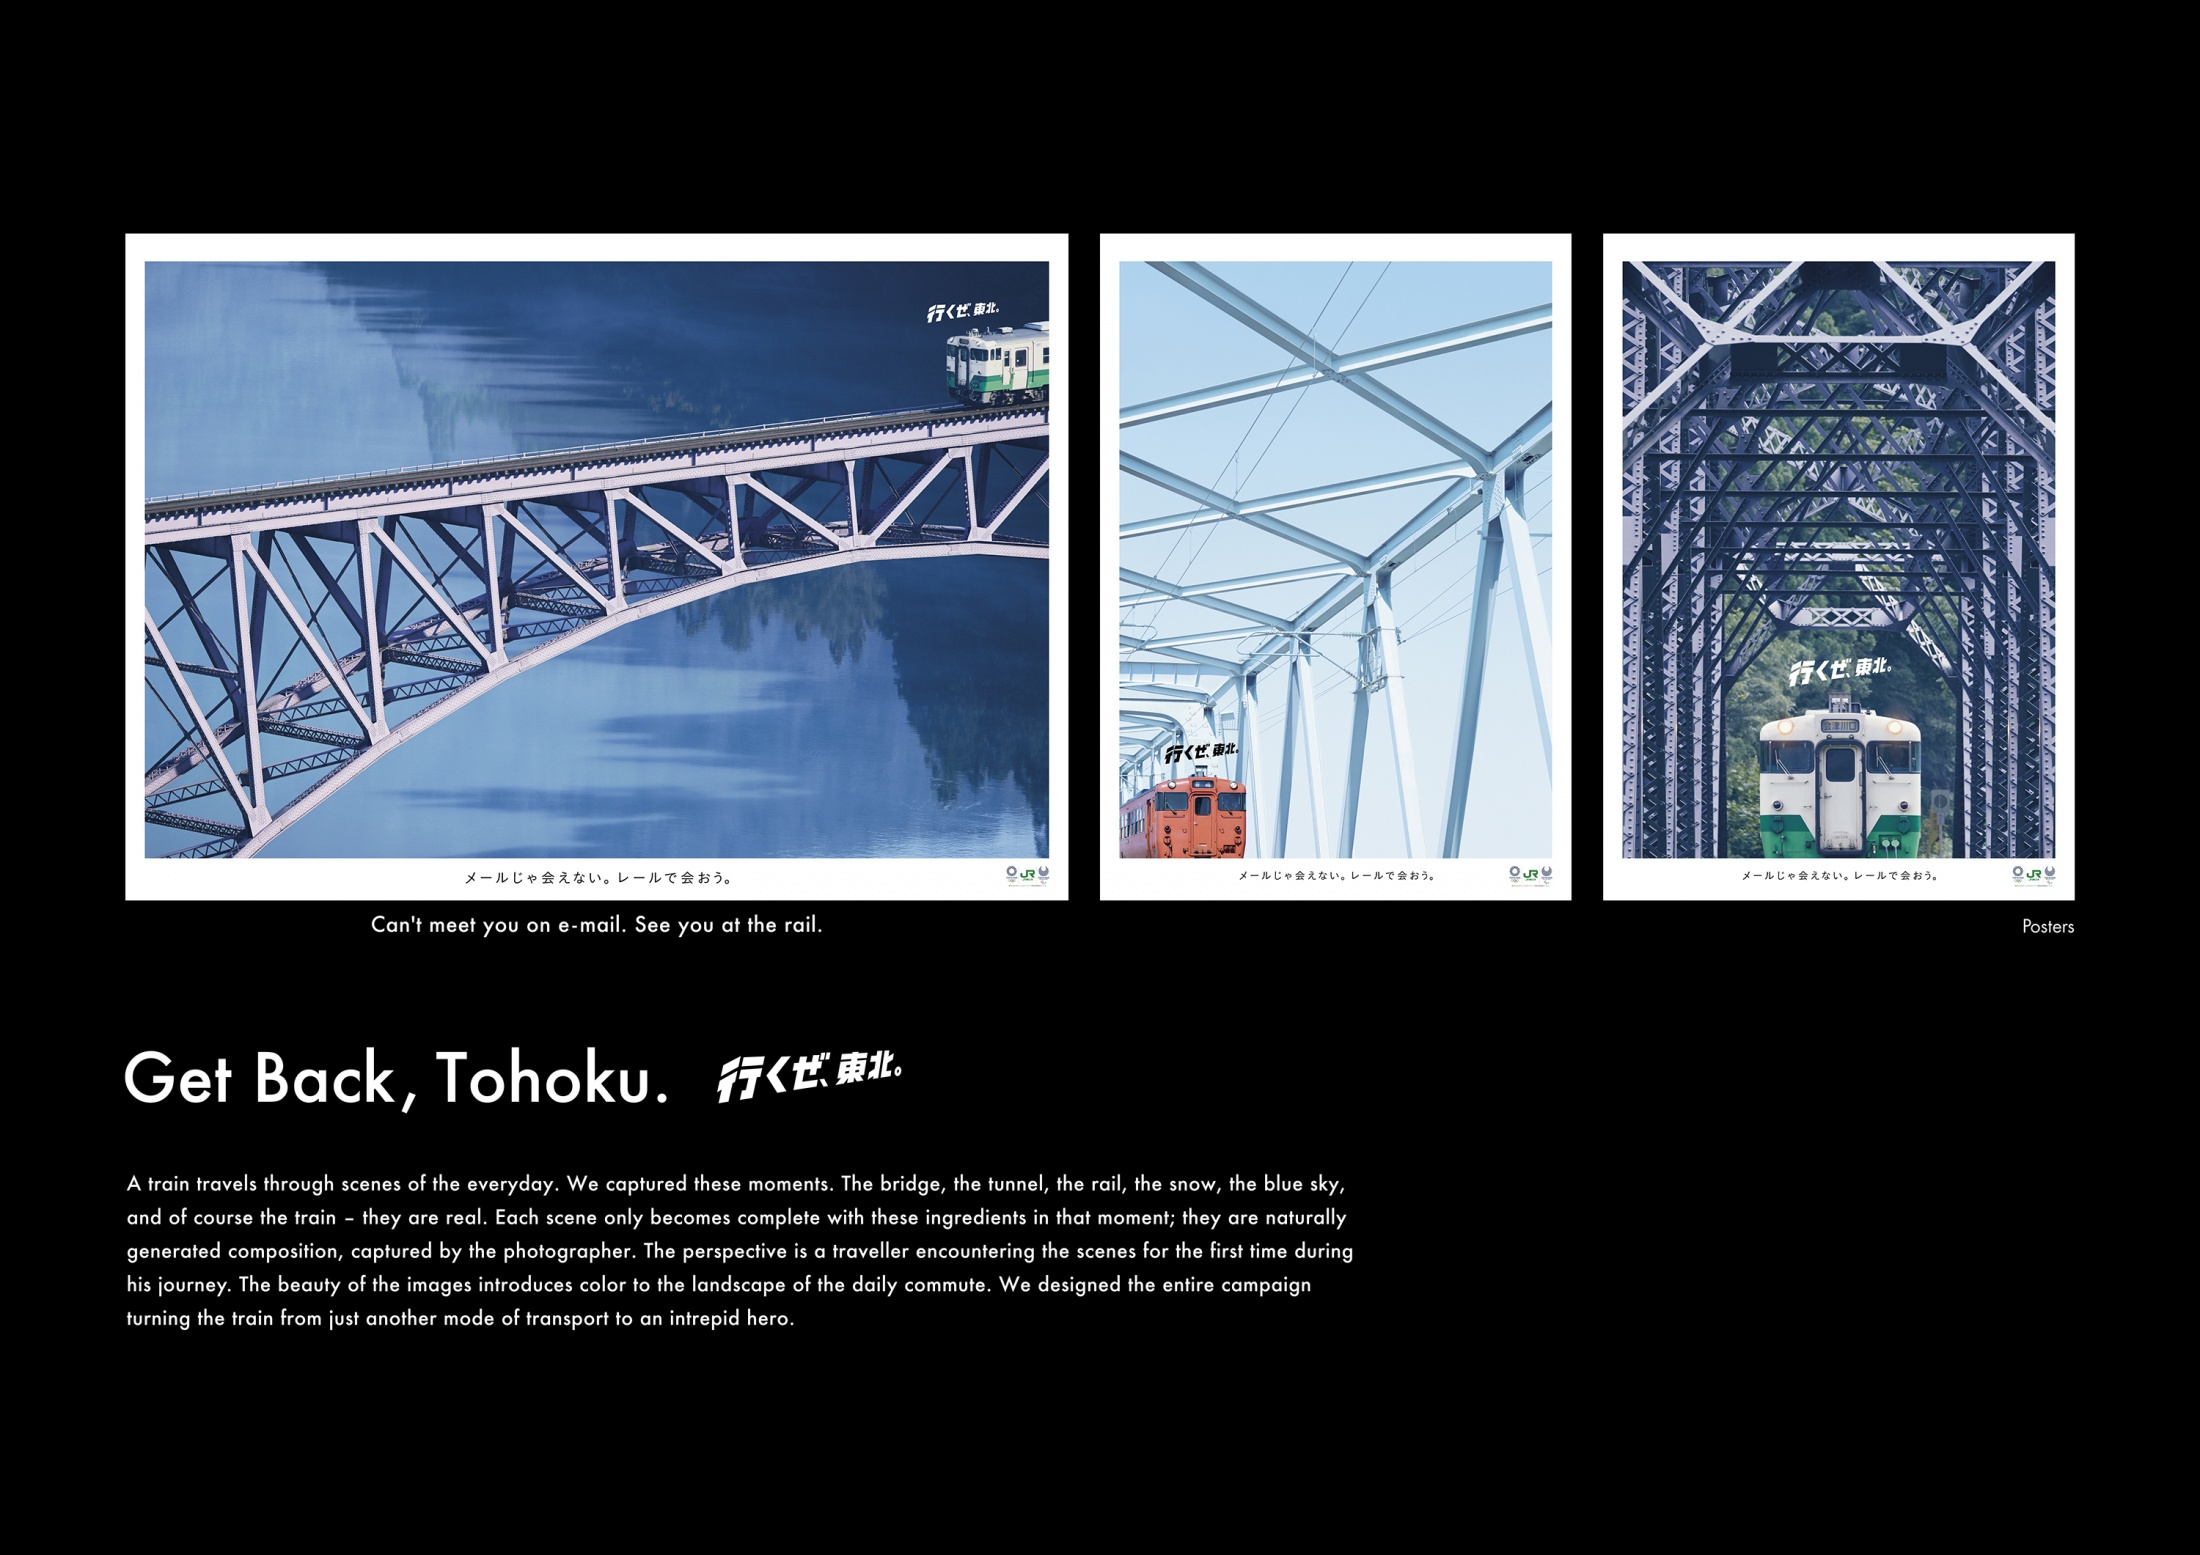 Thumbnail for Get Back, Tohoku.